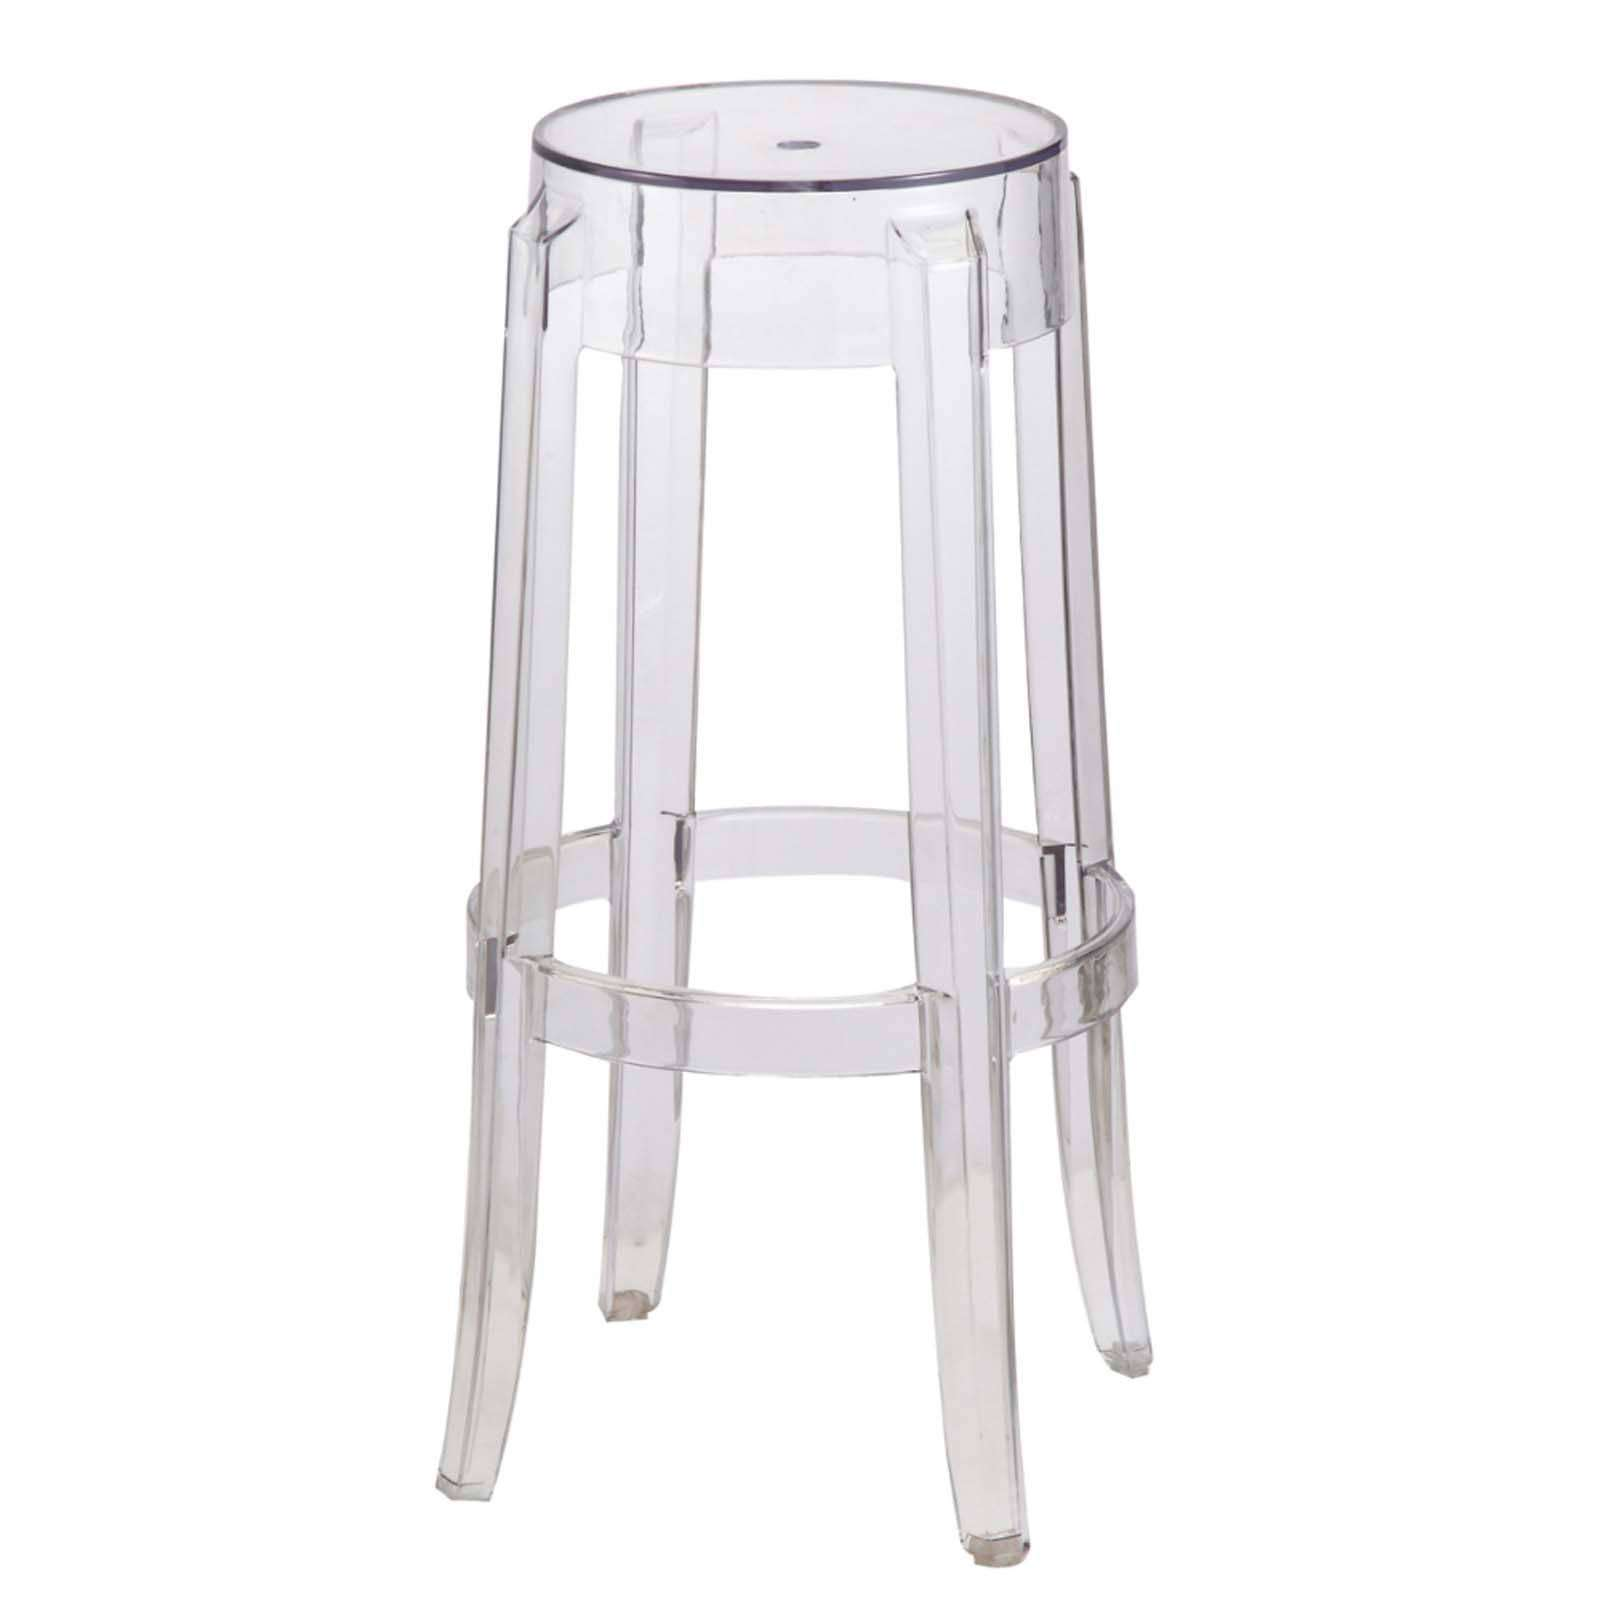 Acrylic Bar Stool Clear